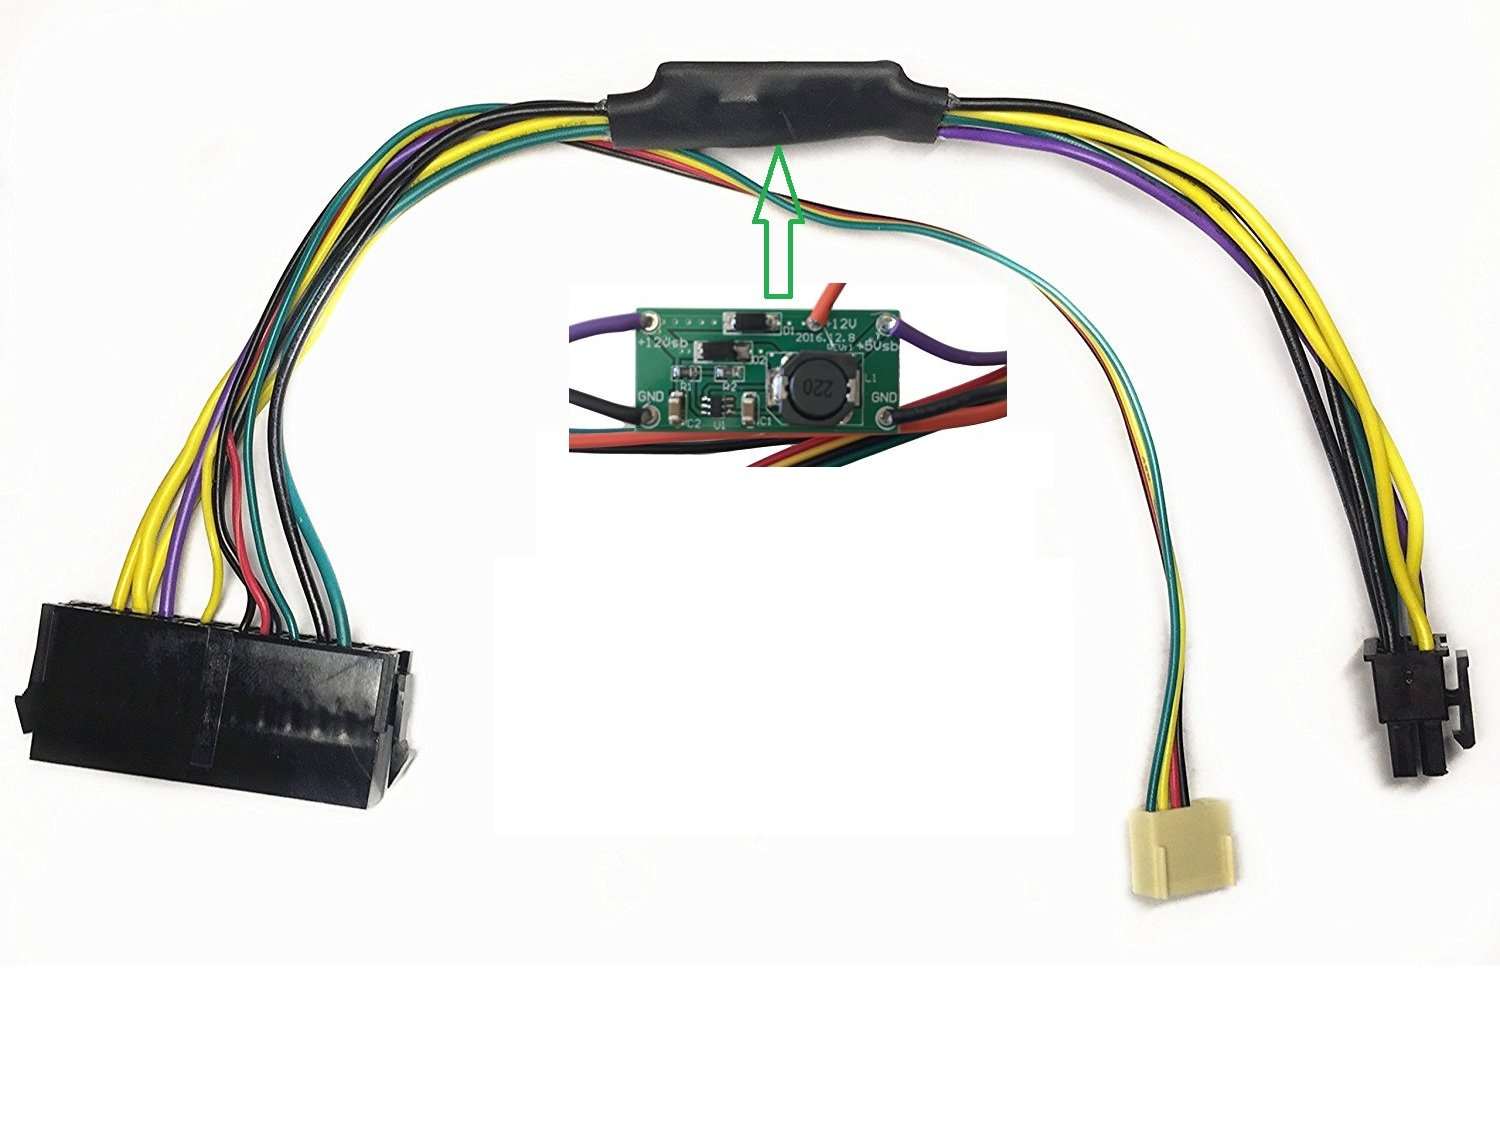 EZSync ATX PSU (24-Pin) to HP Motherboard (6-Pin PCI-E, 2 ports) Power Adapter Cable for HP Z220/Z230 Workstation, 11 inches and 18 AWG, EZSync910 by EZSync (Image #5)